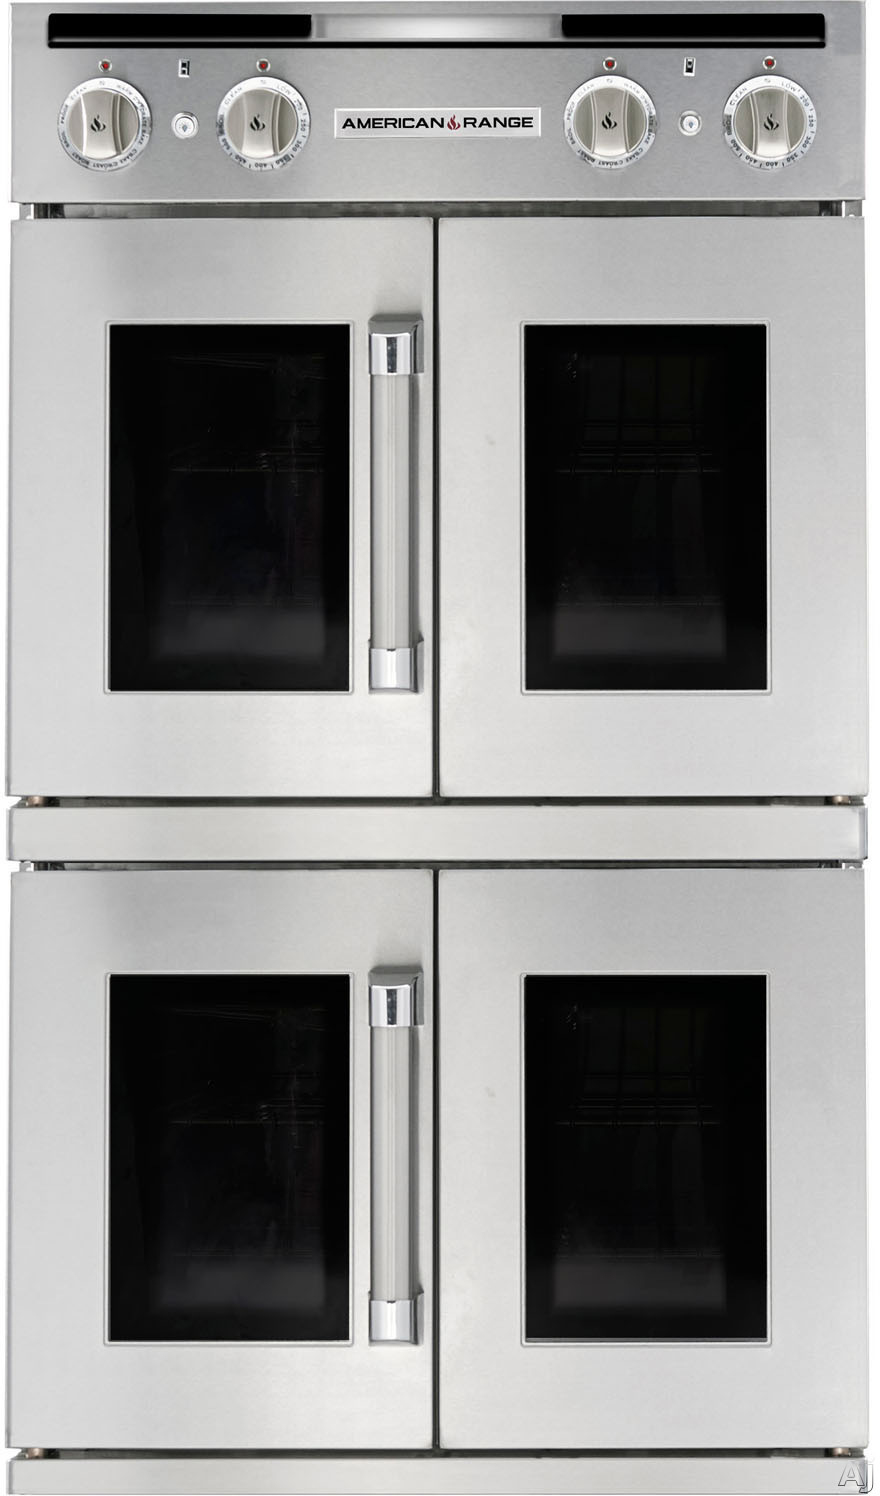 American Range Legacy Series AROFFG230 30 Inch Double French Door Gas Wall Oven with 4.7 cu. ft. Capacity, Innovection Convection, Manual Clean, Infrared Broiler, Proofing and Porcelainized Interior